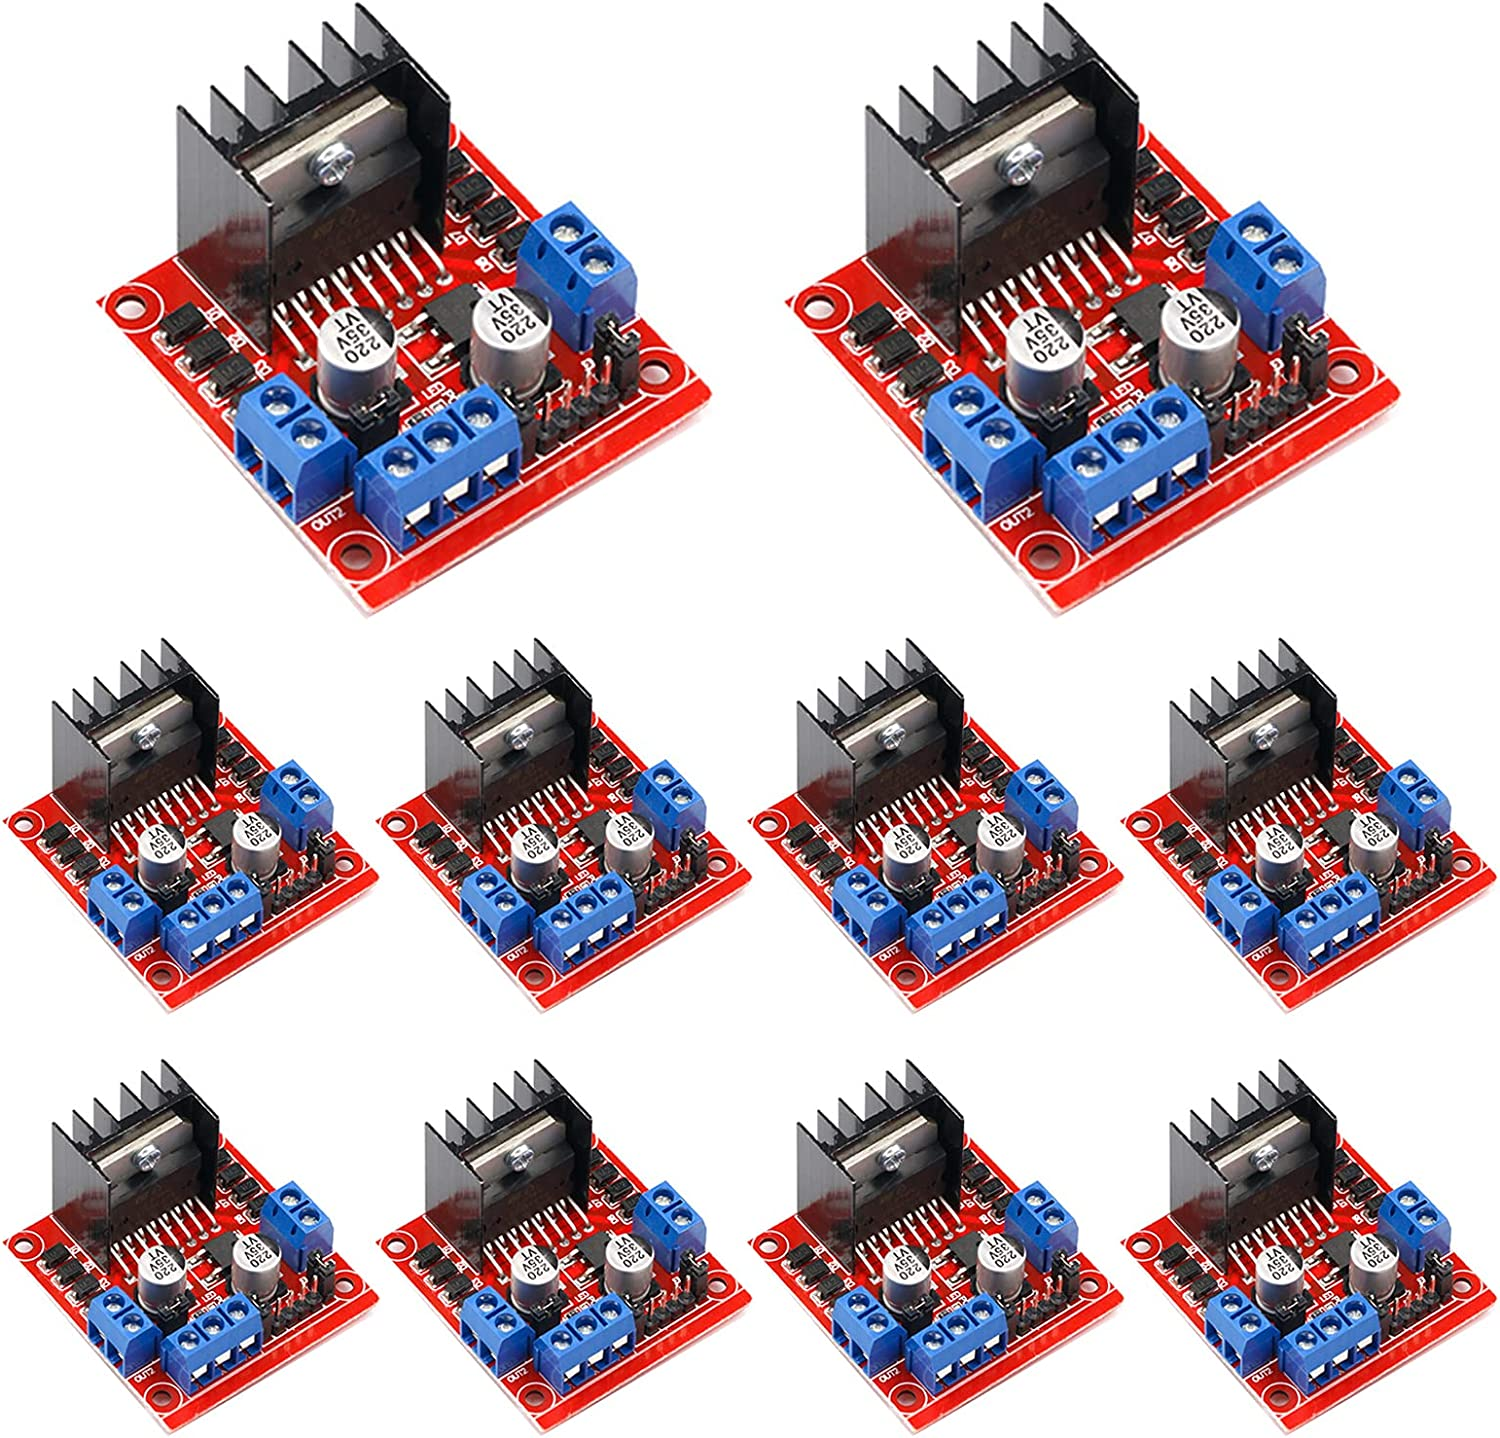 10Pack L298N Motor Drive 2021 autumn Popular brand in the world and winter new Controller Dual DC Robot Board H-Bridge